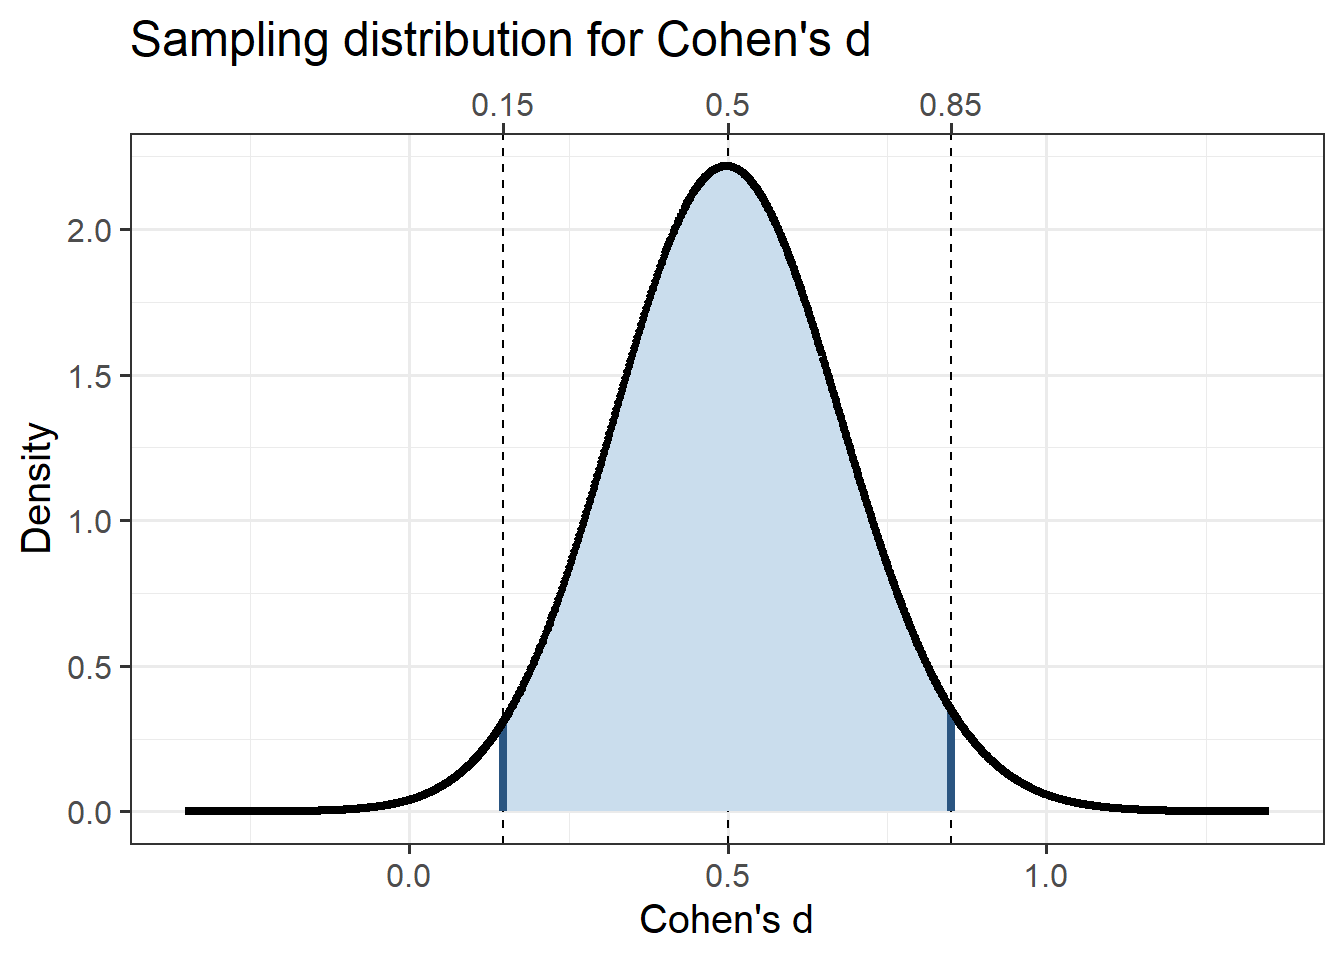 Cohen's d's sampling distribution for a moderate population effect size (d = 0.5) and for a 2-cell design with 80\% power (i.e. 64 participants per group).